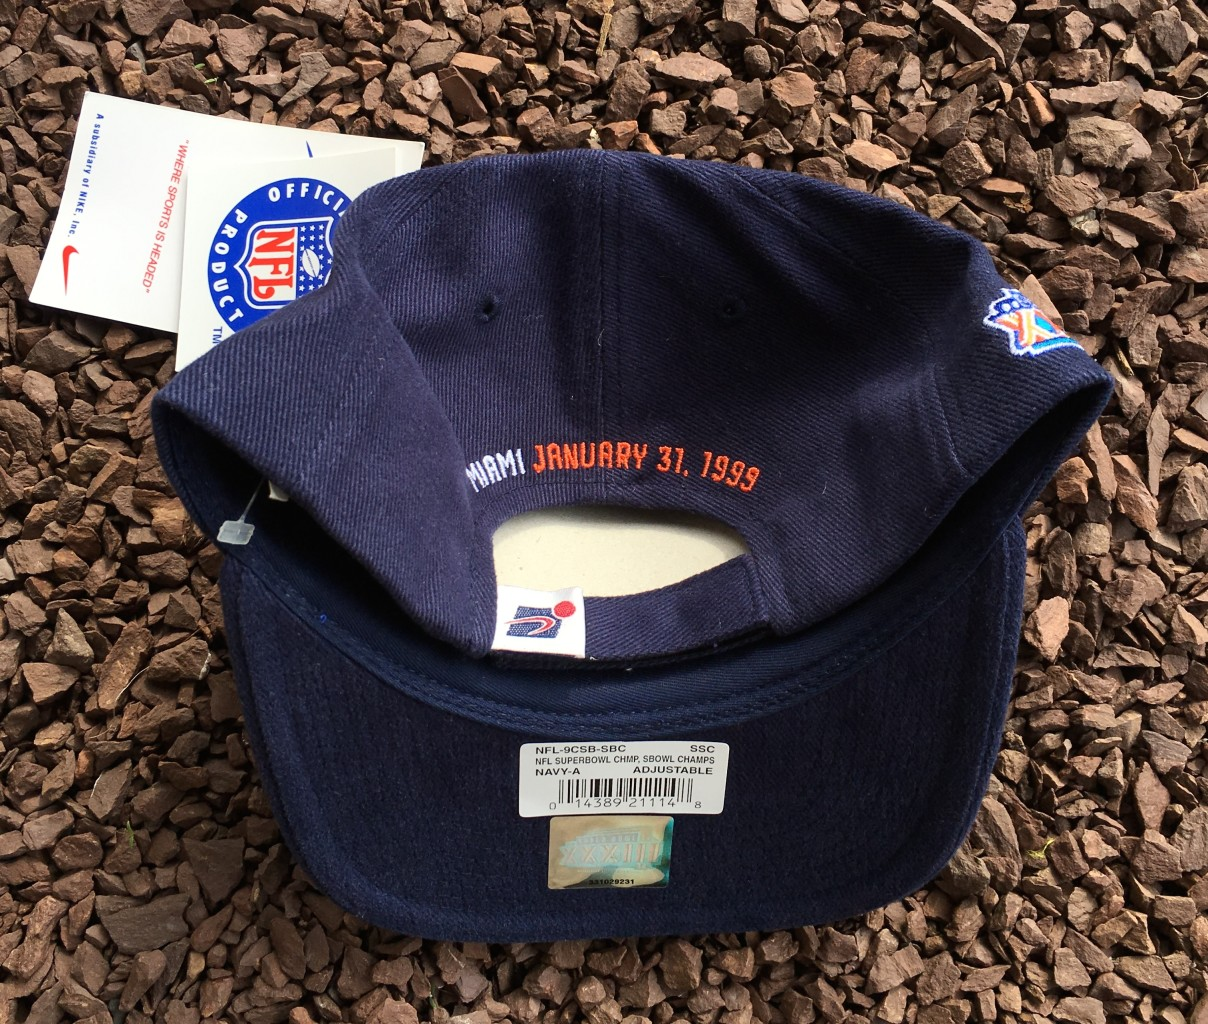 b83cff995 1998 Denver Broncos Super Bowl XXXIII Champs Sports Specialties Hat ...